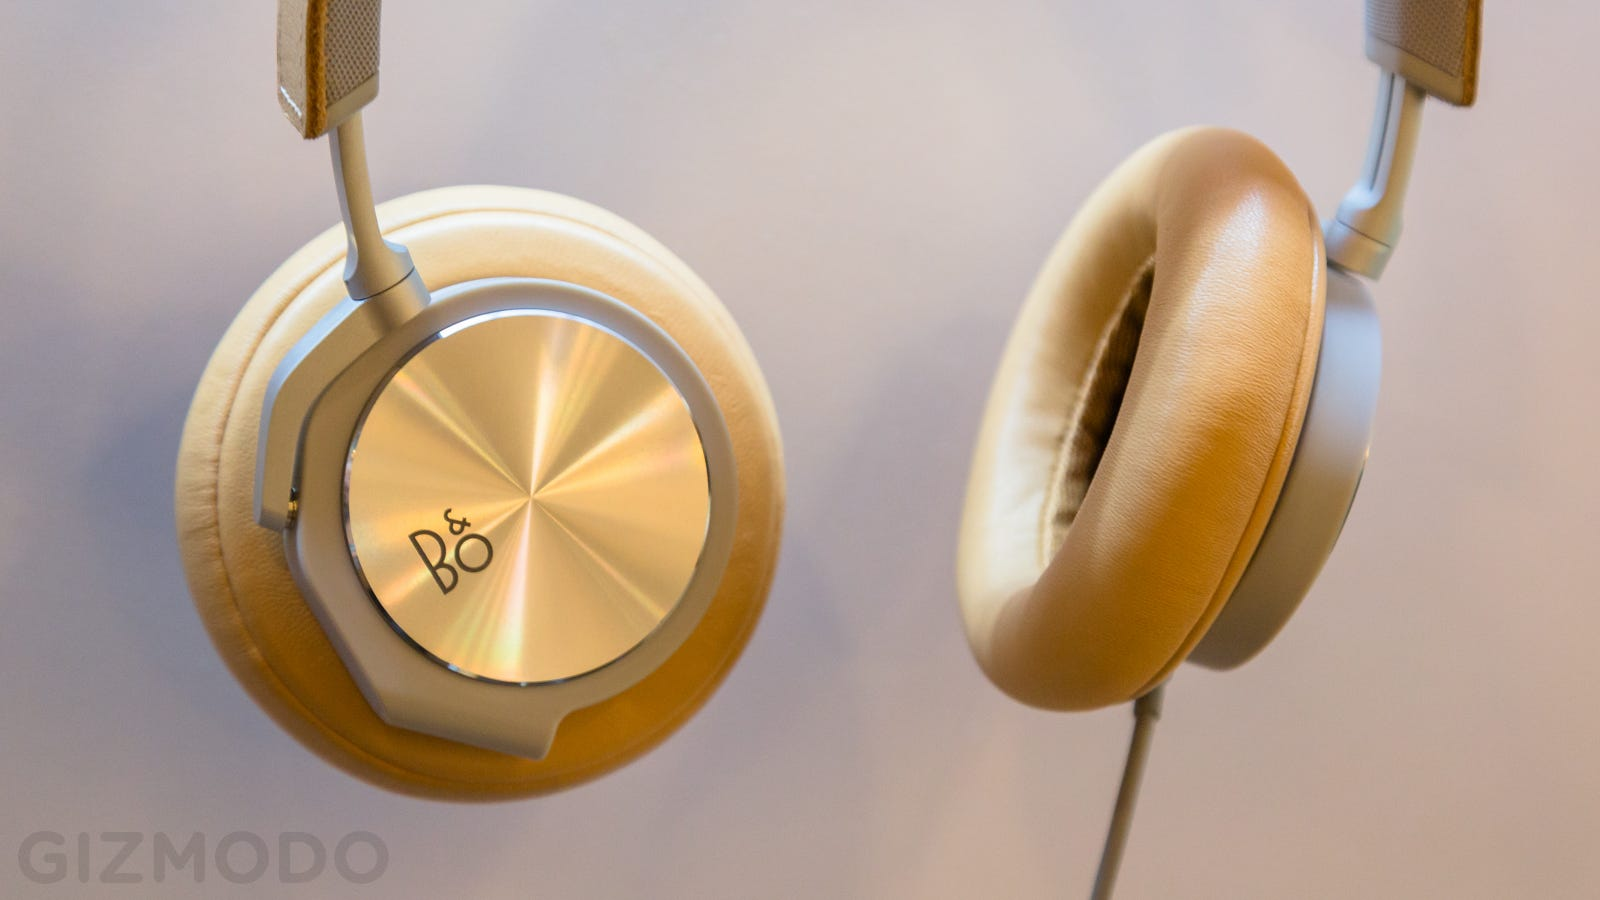 sleep earbuds bluetooth headband - B&O H6 Headphones Are So Beautiful and Fancy They'll Fool Your Brain